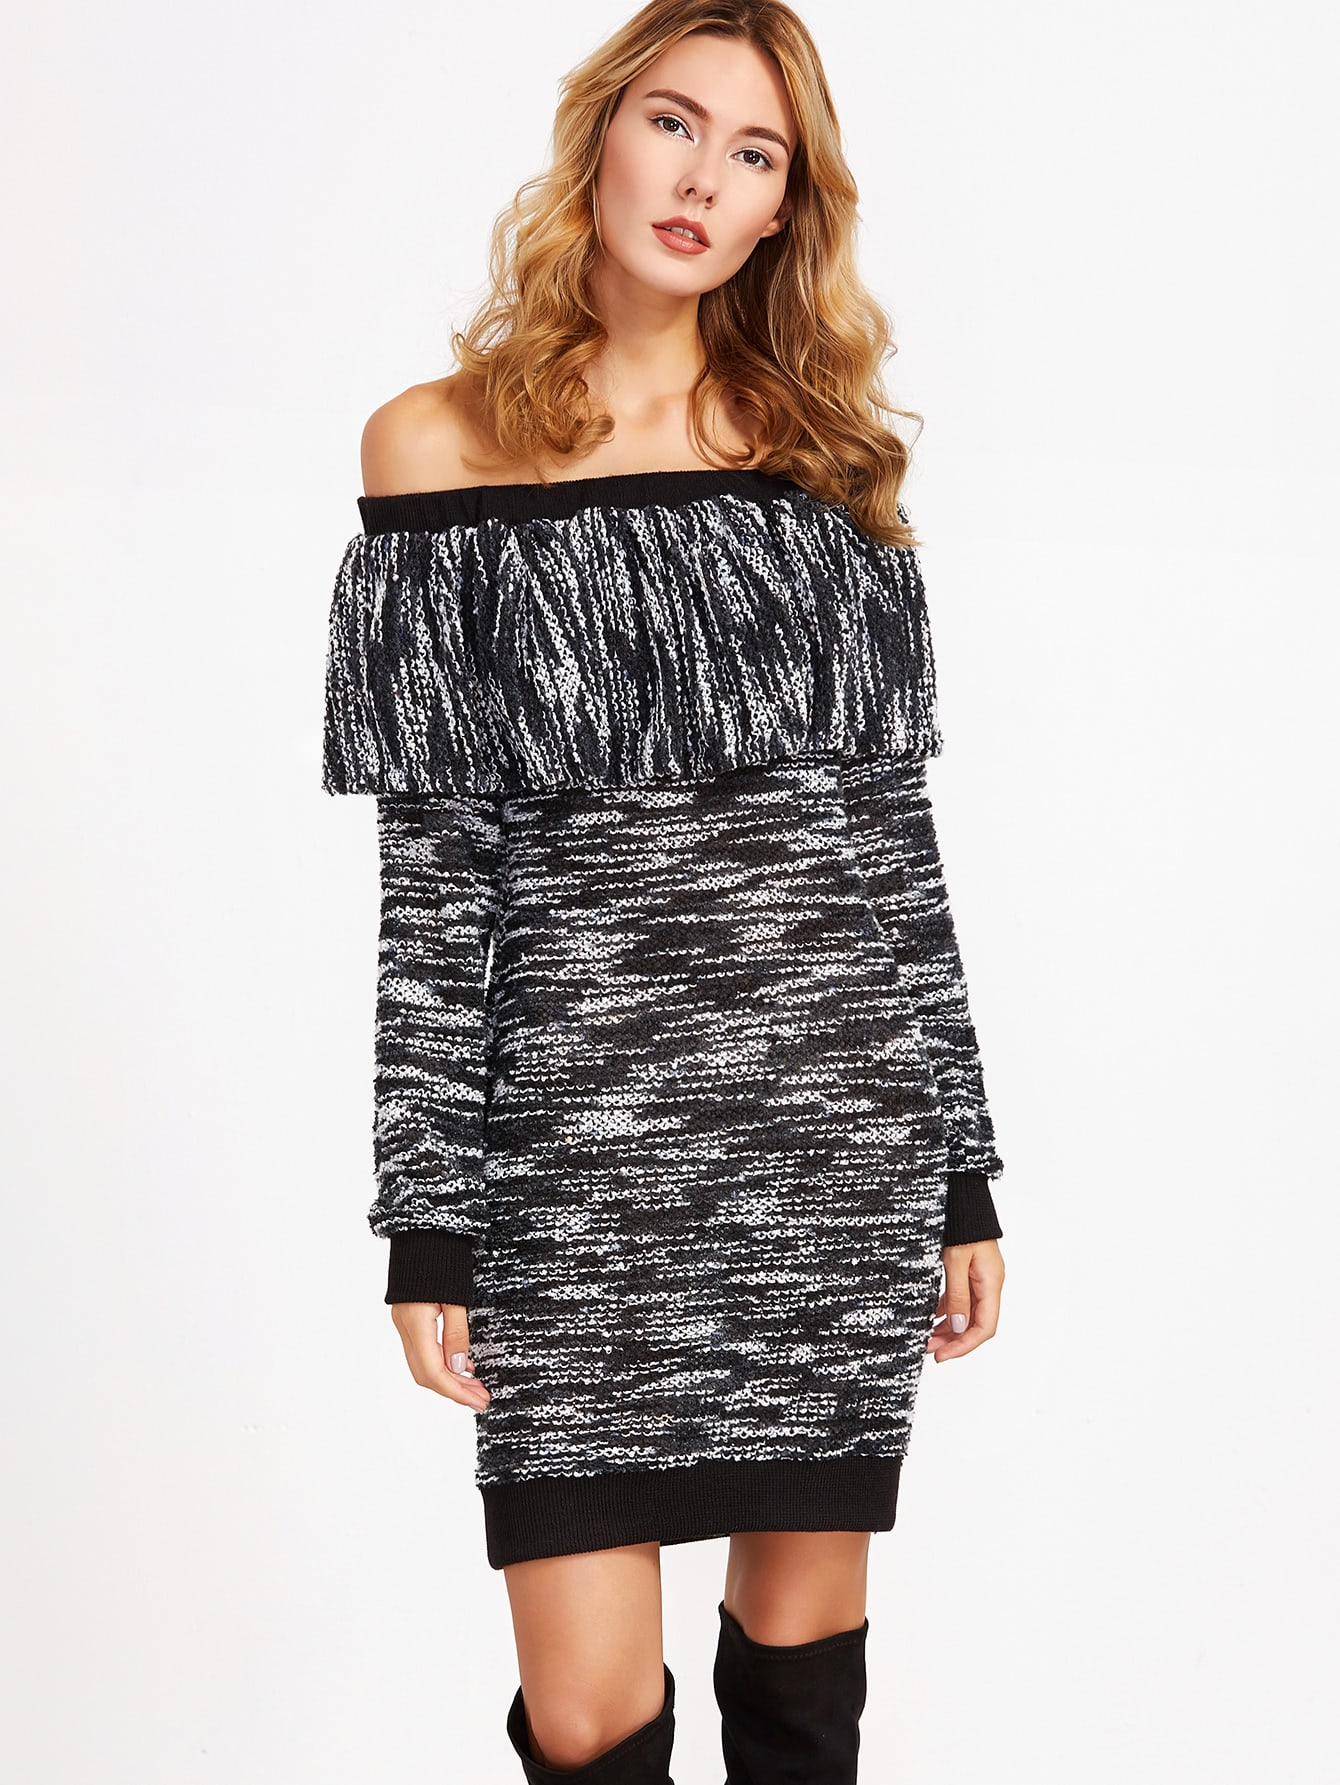 Black Marled Knit Ruffle Off The Shoulder Sweater Dress bar iii new black white women s xl marled open knit scoop neck sweater $79 439